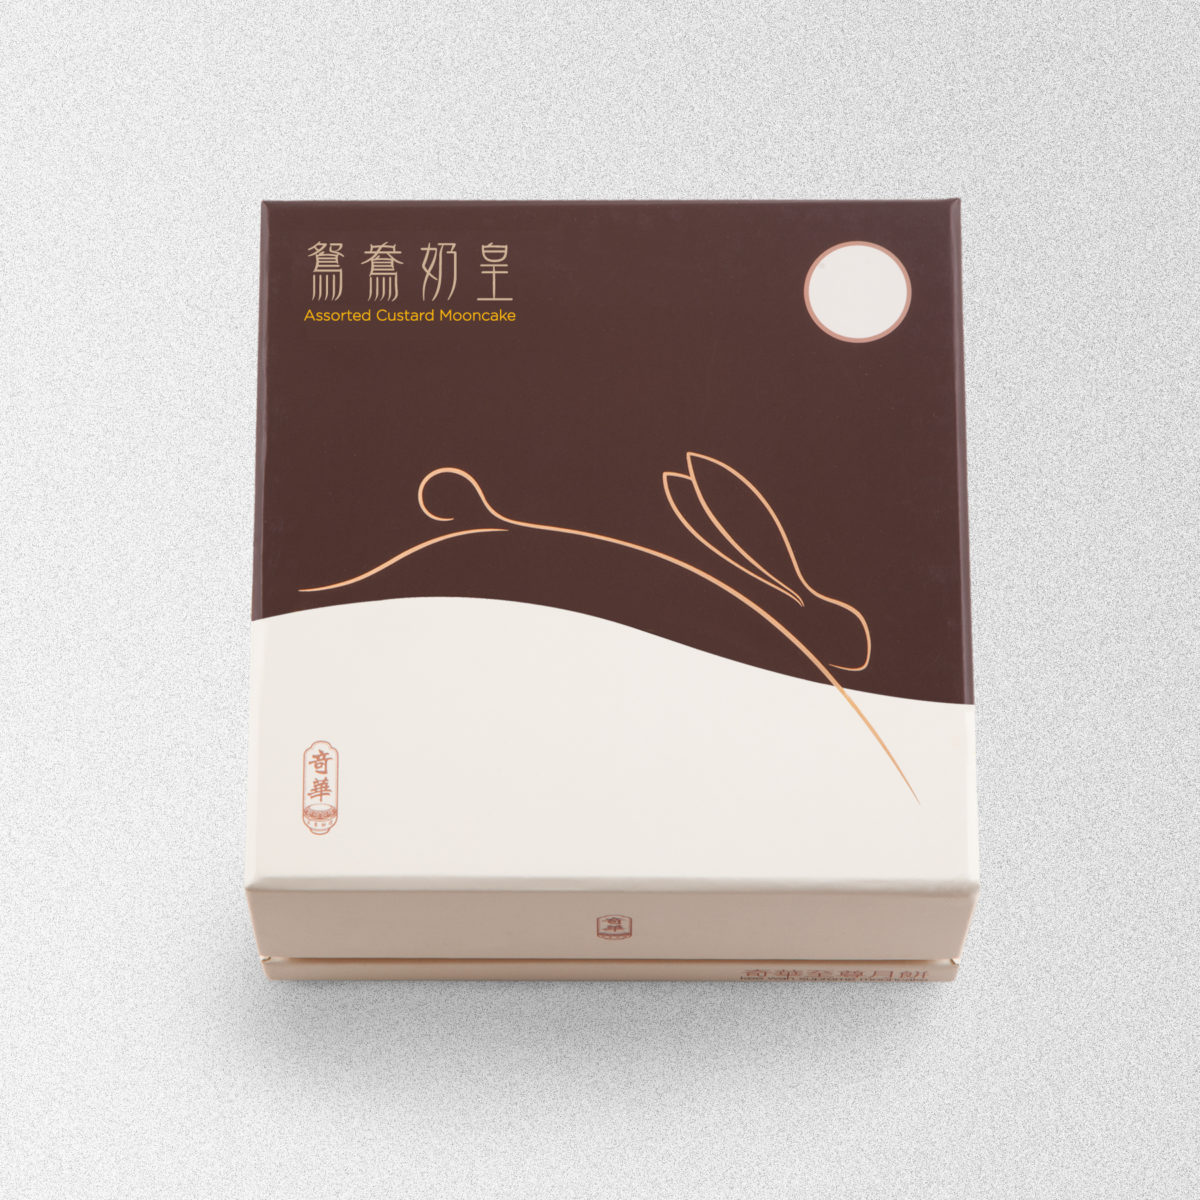 1800x1800 Custard Mooncake_01Assorted_Favourite